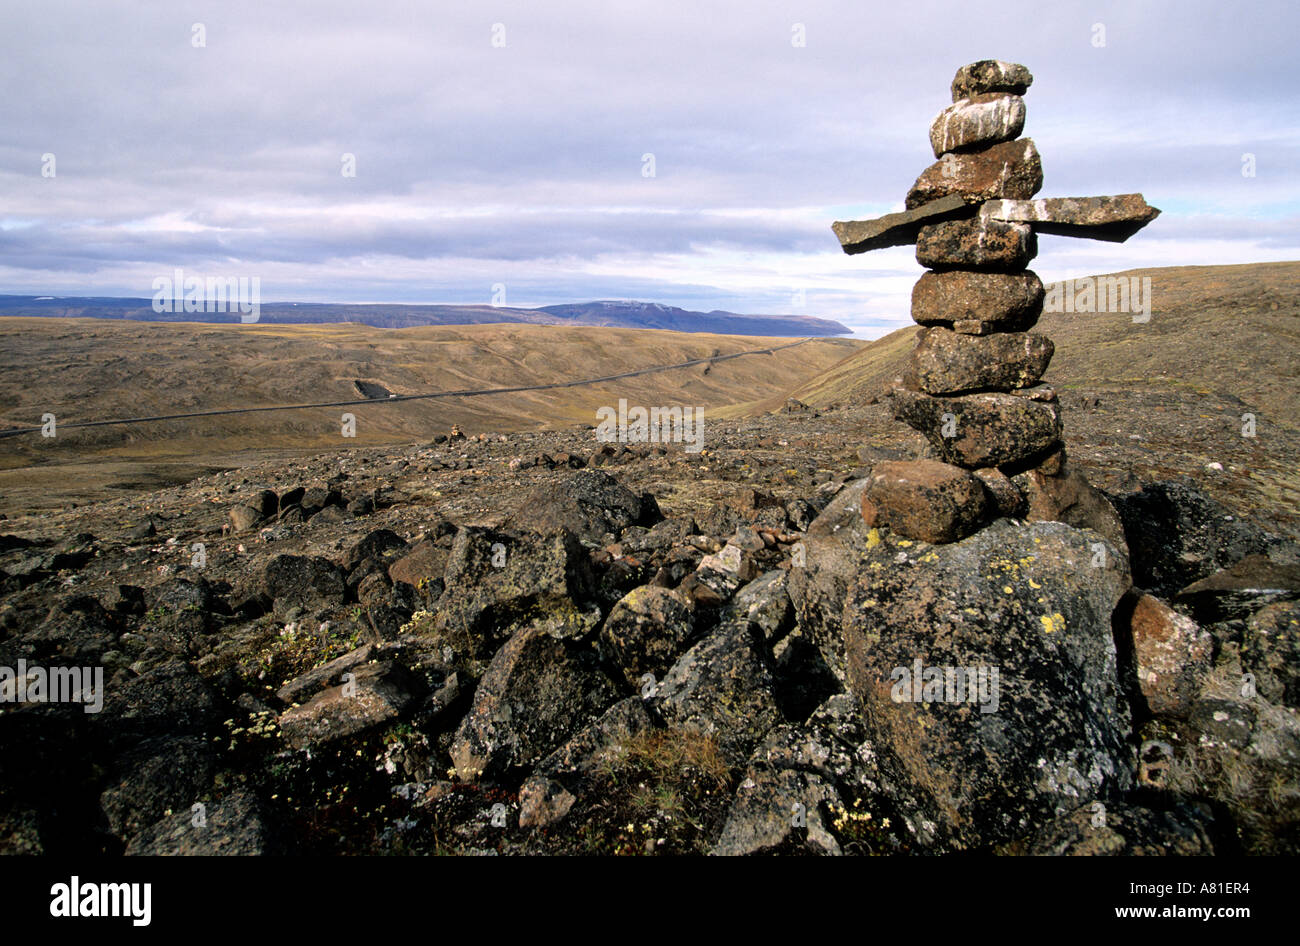 Canada, Nunavut, an inuit cairn on the road between Nanisivik and Victor Bay on Baffin Island - Stock Image